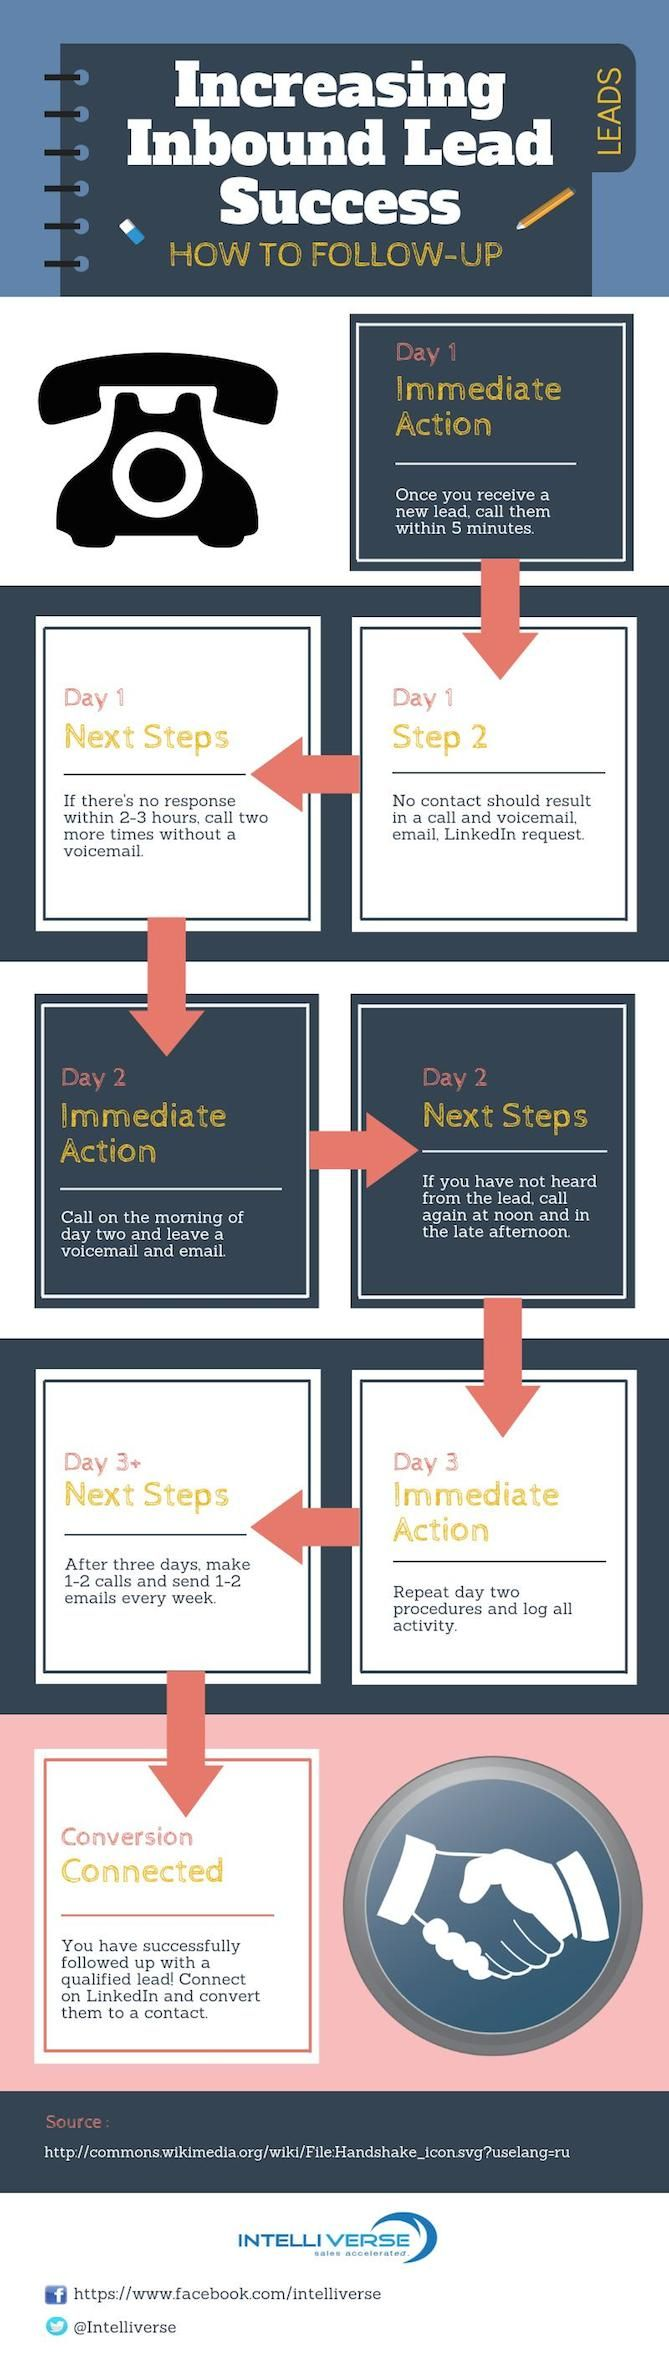 lead follow up schedule for realtors with internet leads